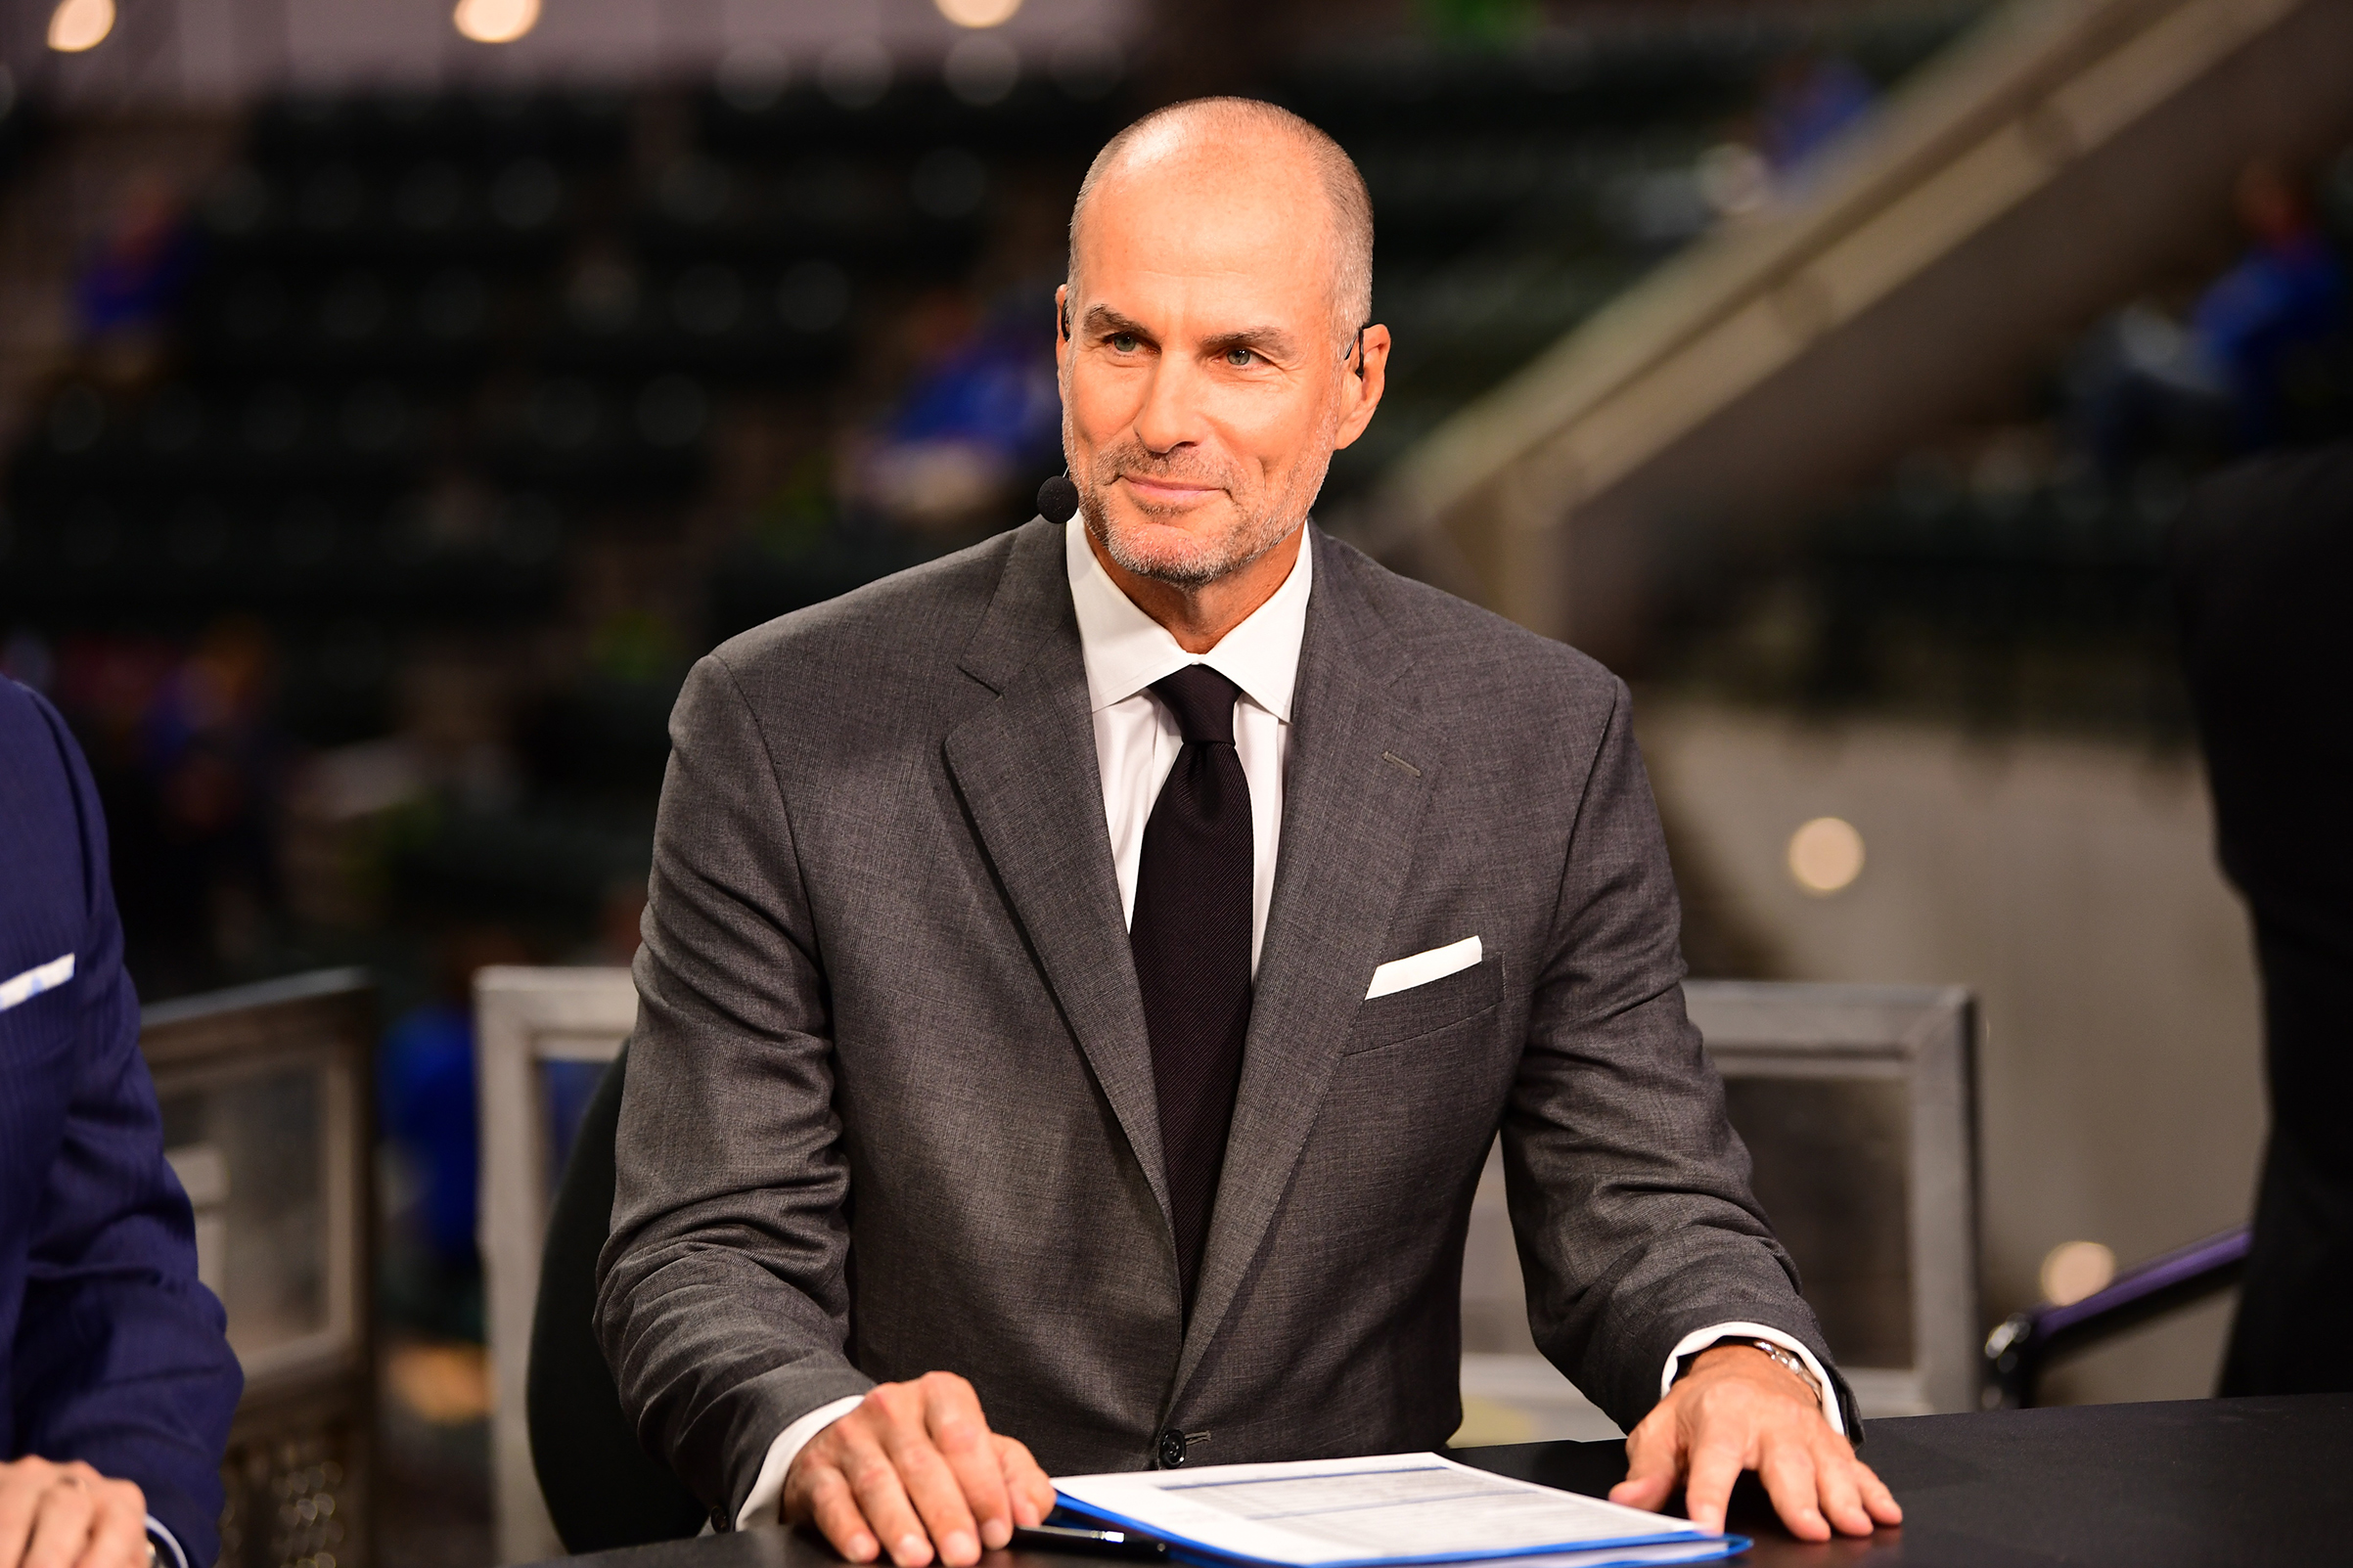 'The idea that the free market works for the entire world, save the athletes, is ludicrous.' —Jay Bilas